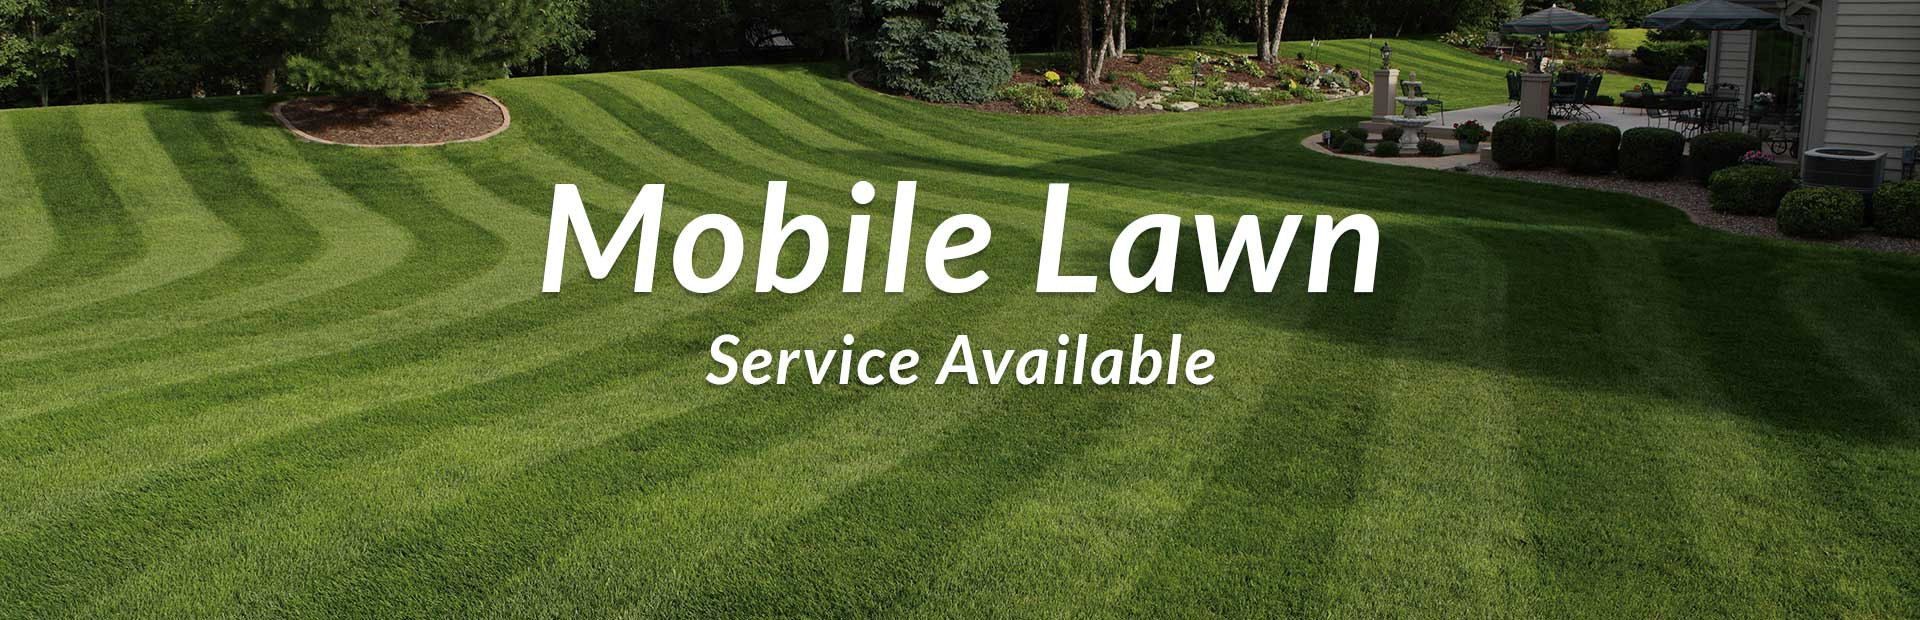 Mobile lawn service is available!